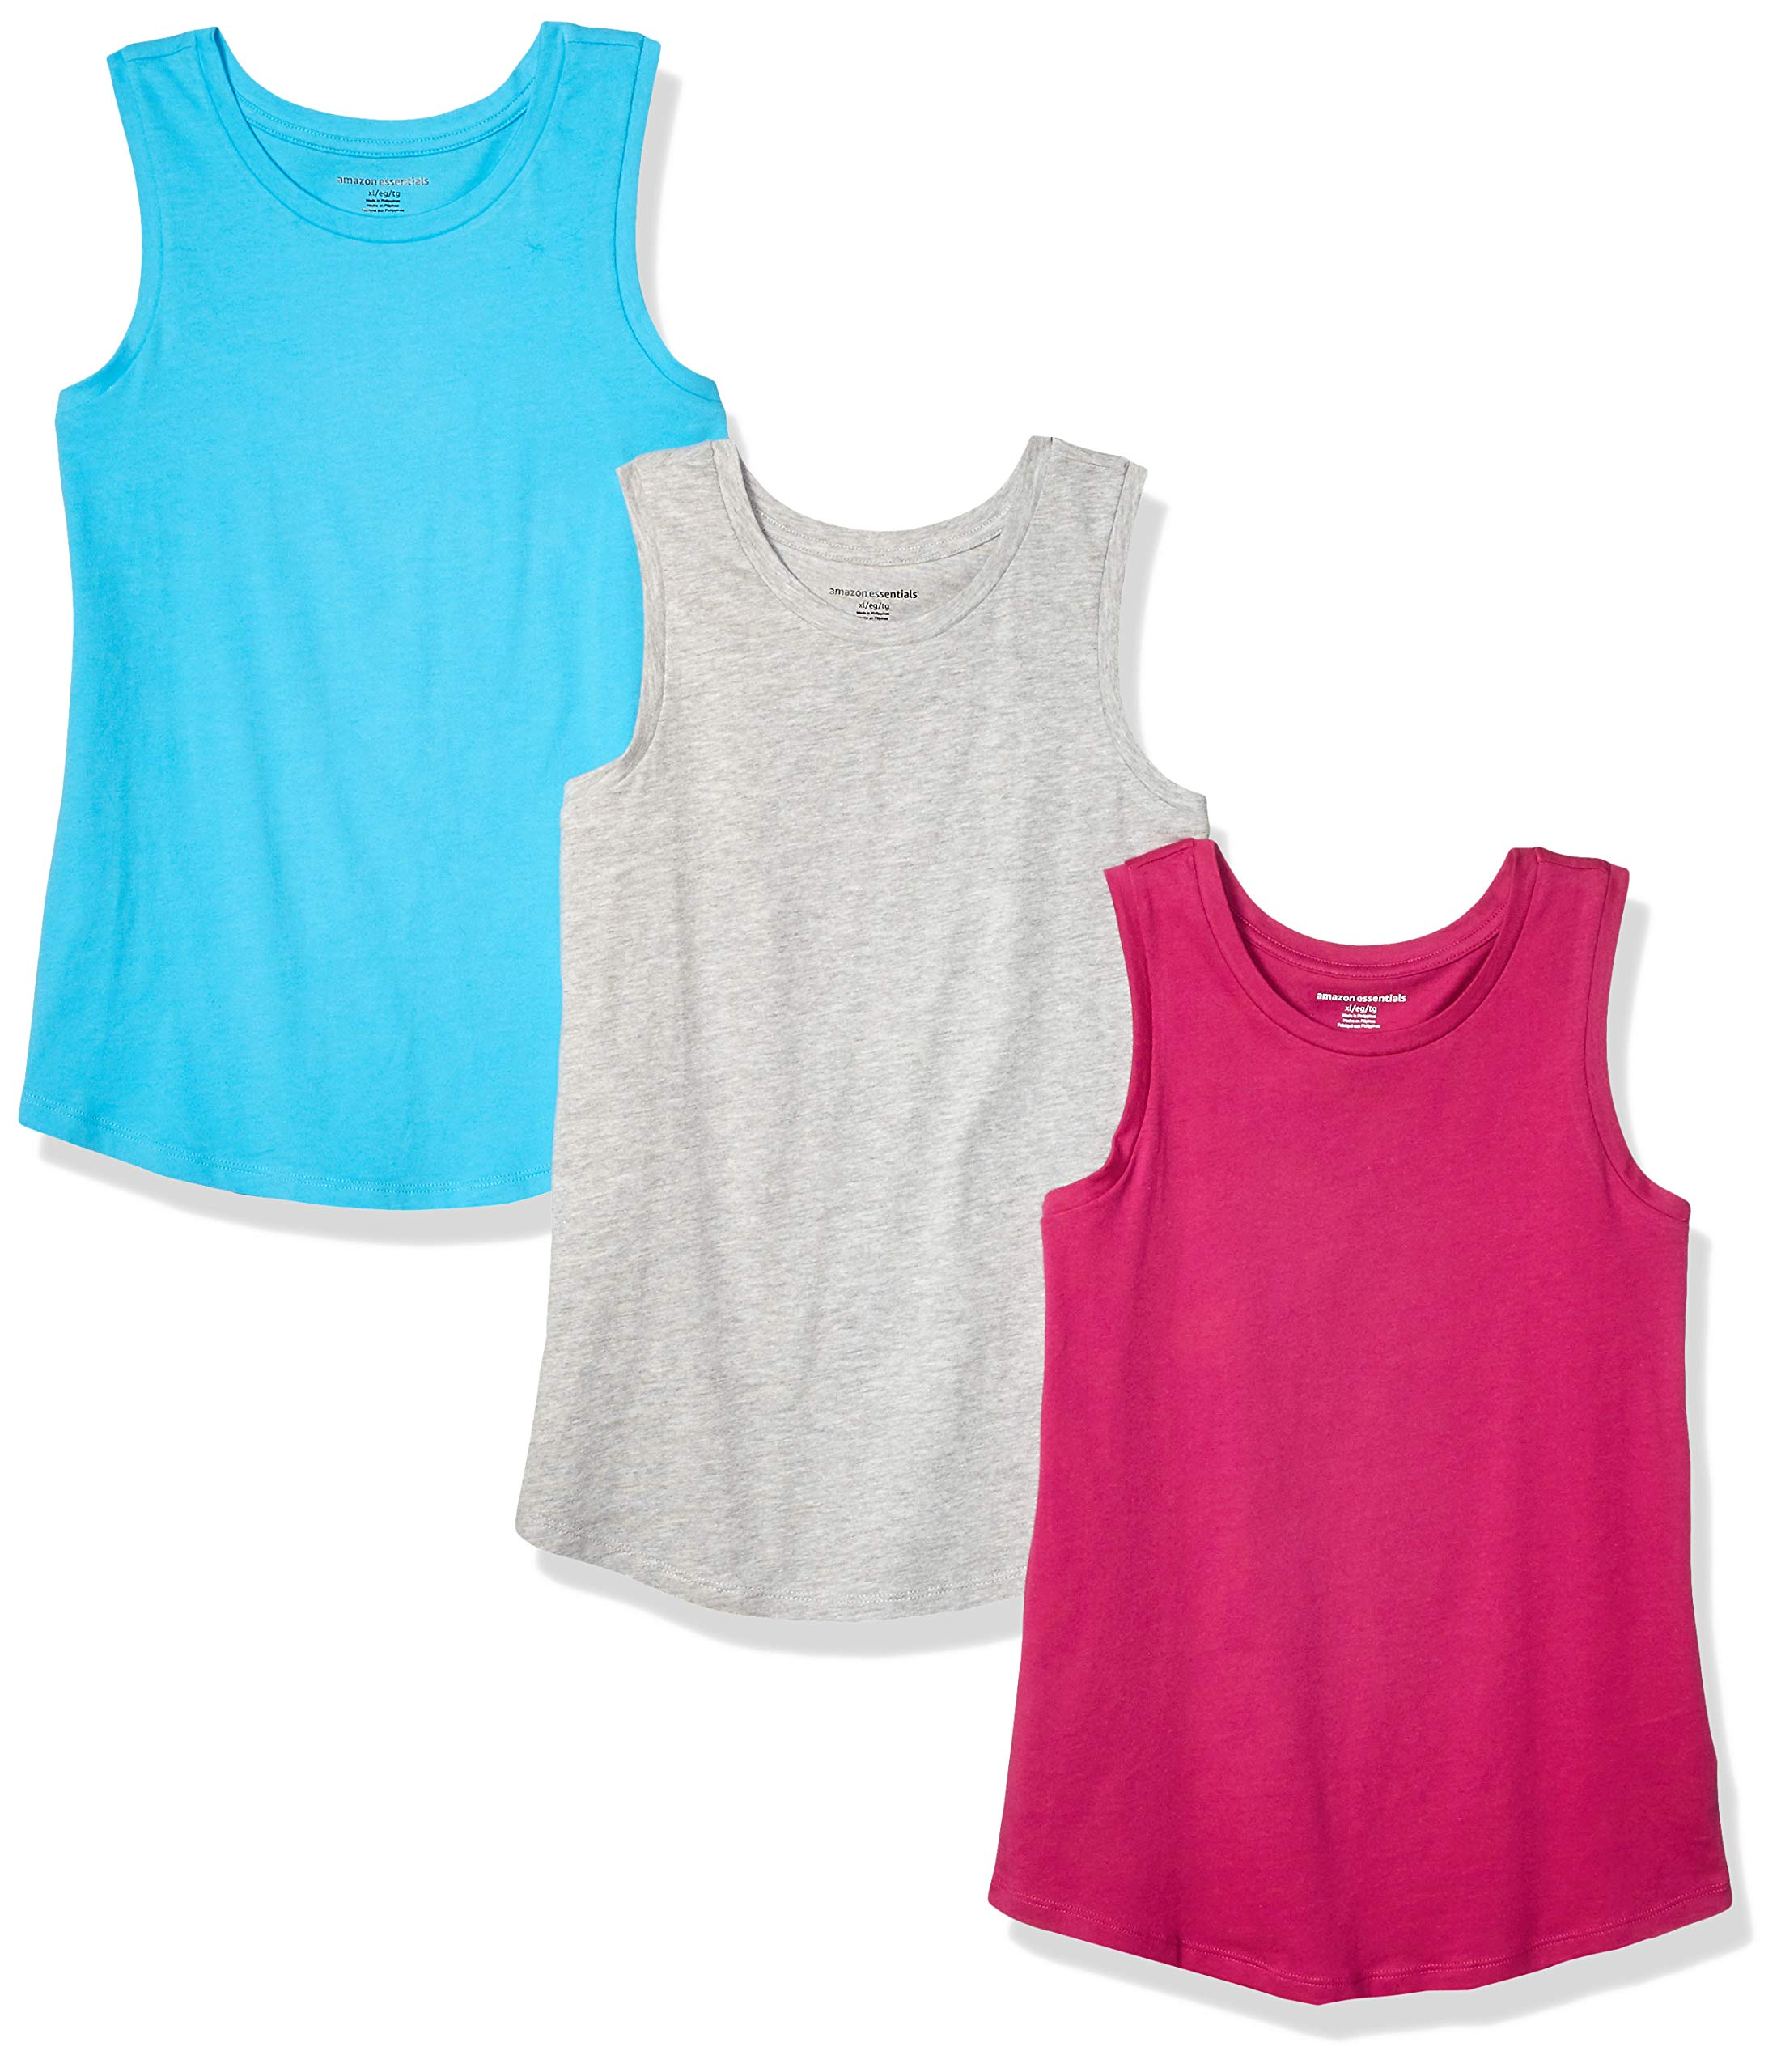 Amazon Essentials    Girls' 3-Pack Tank Top, Cyan/Fuchsia/Heather Grey S (6-7) by Amazon Essentials